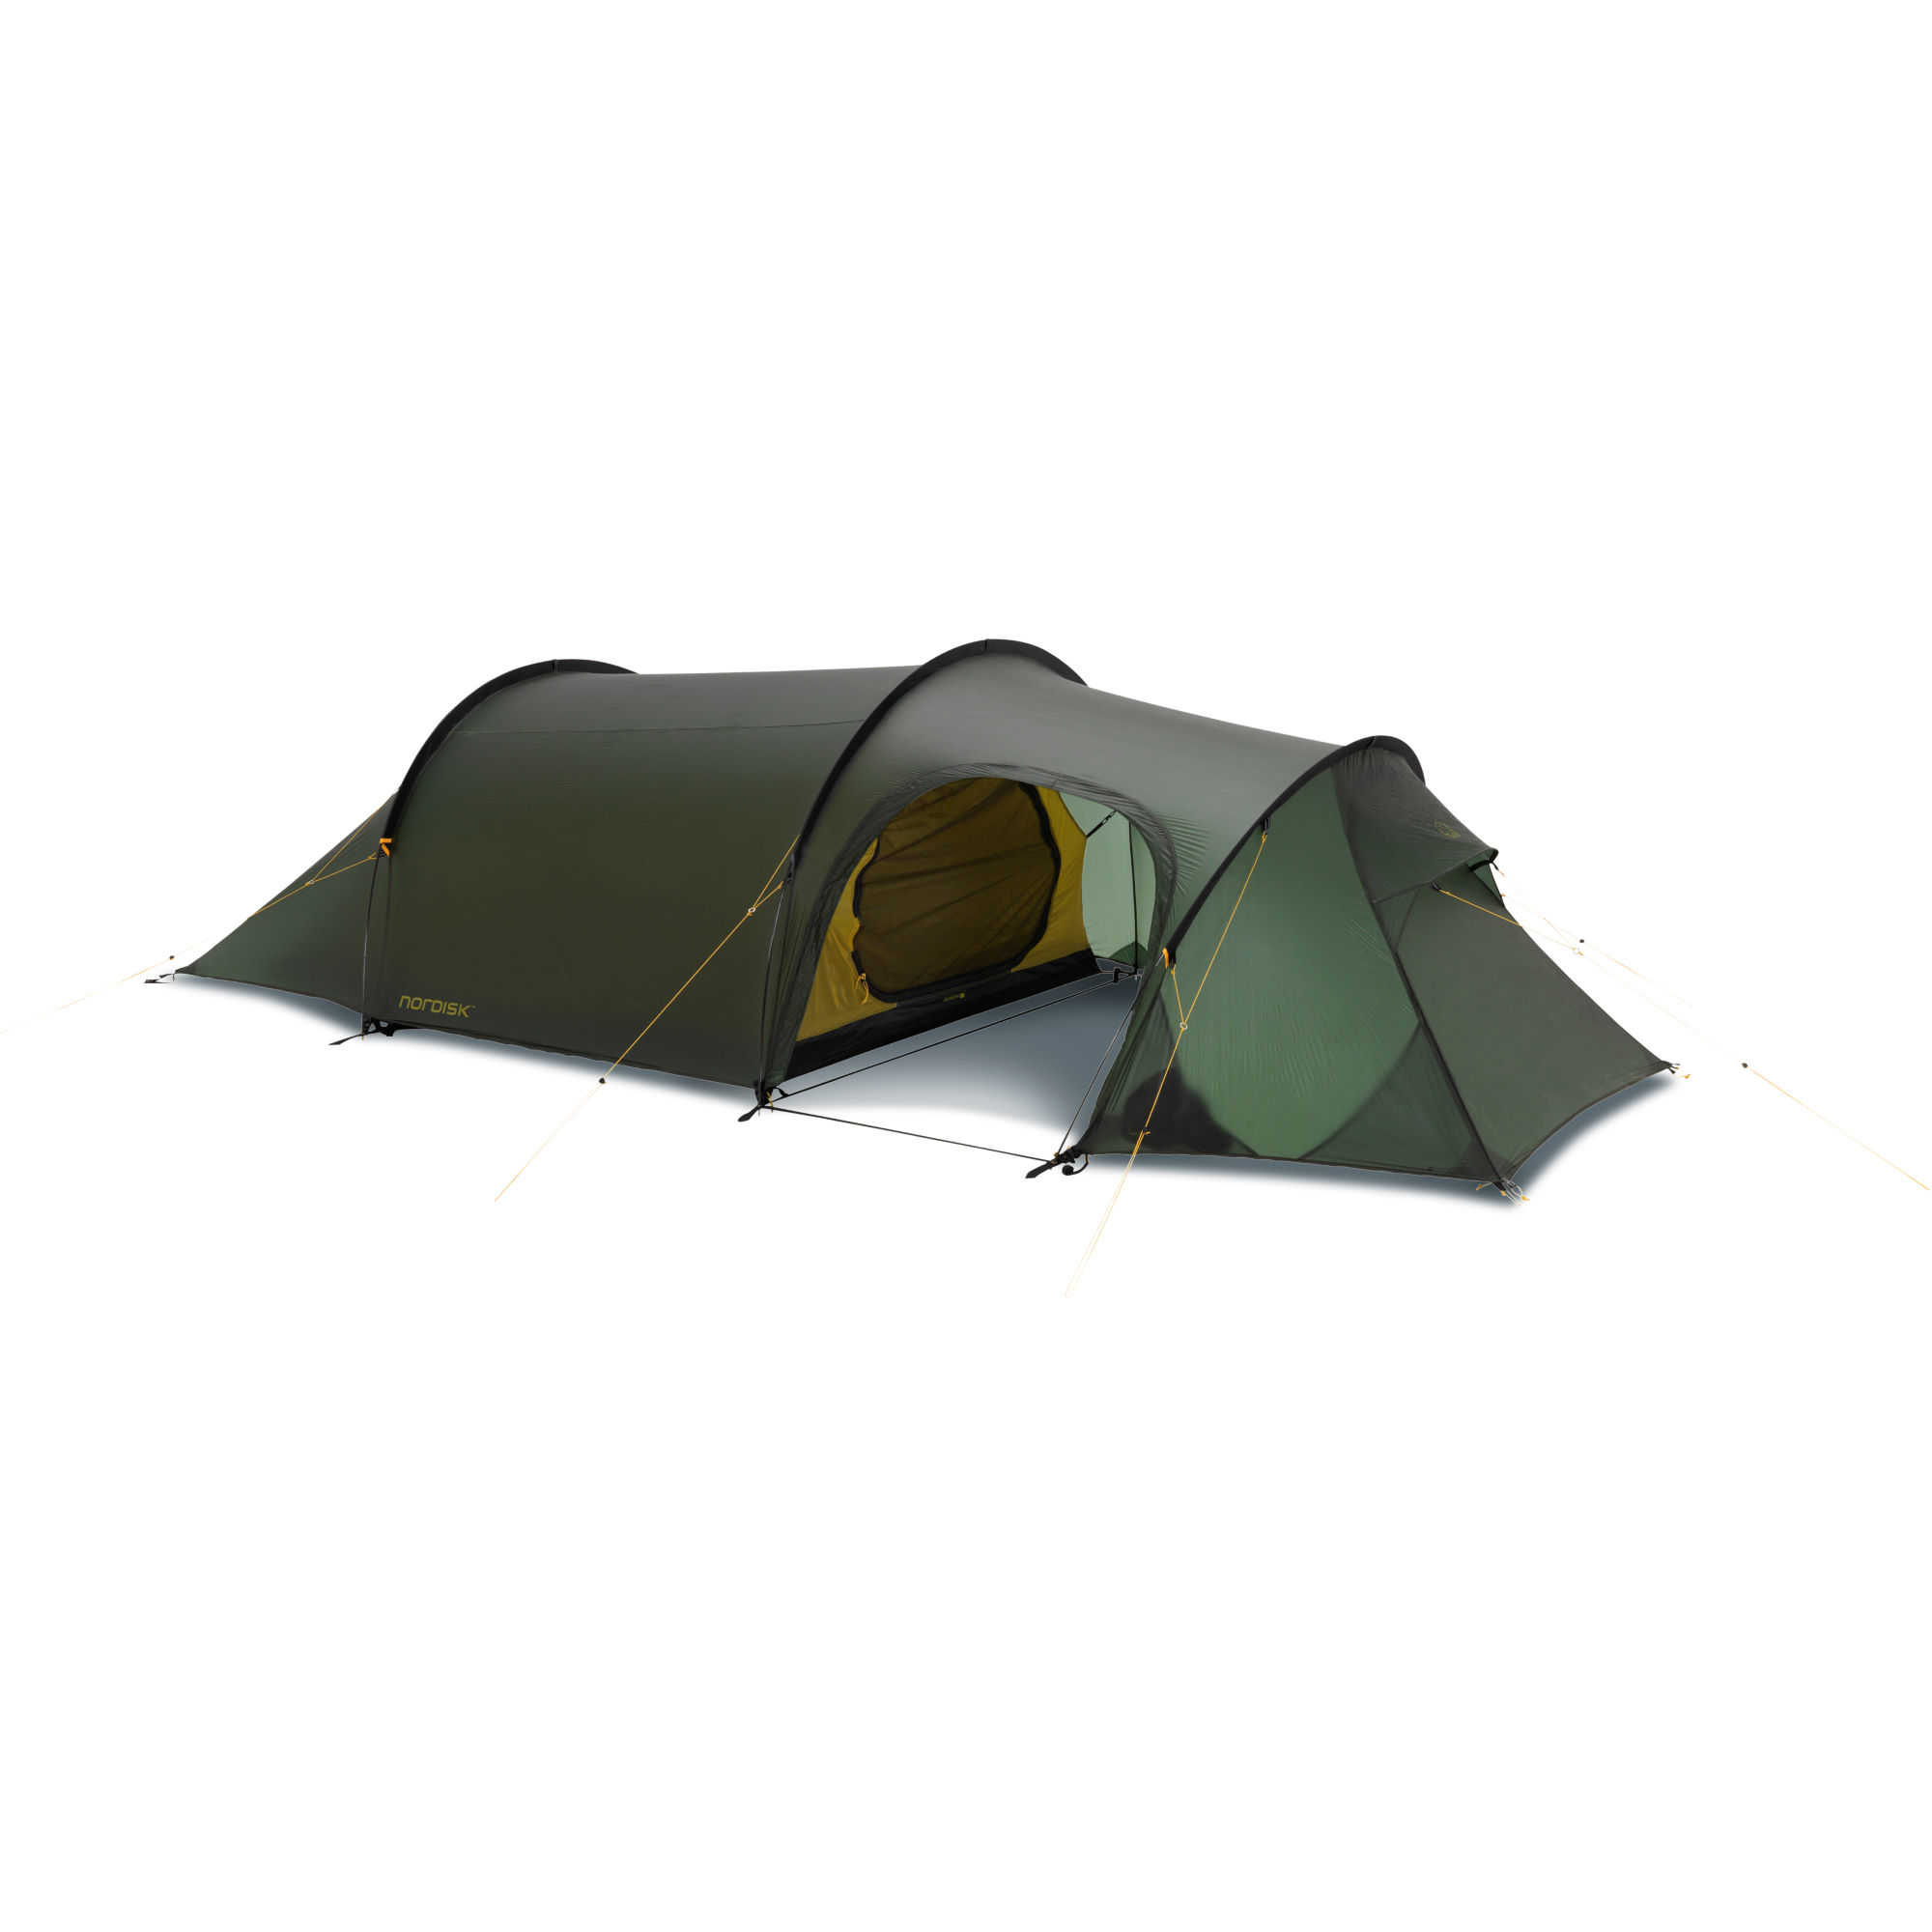 Nordisk Oppland 3 Tent Tents Green 151013 14